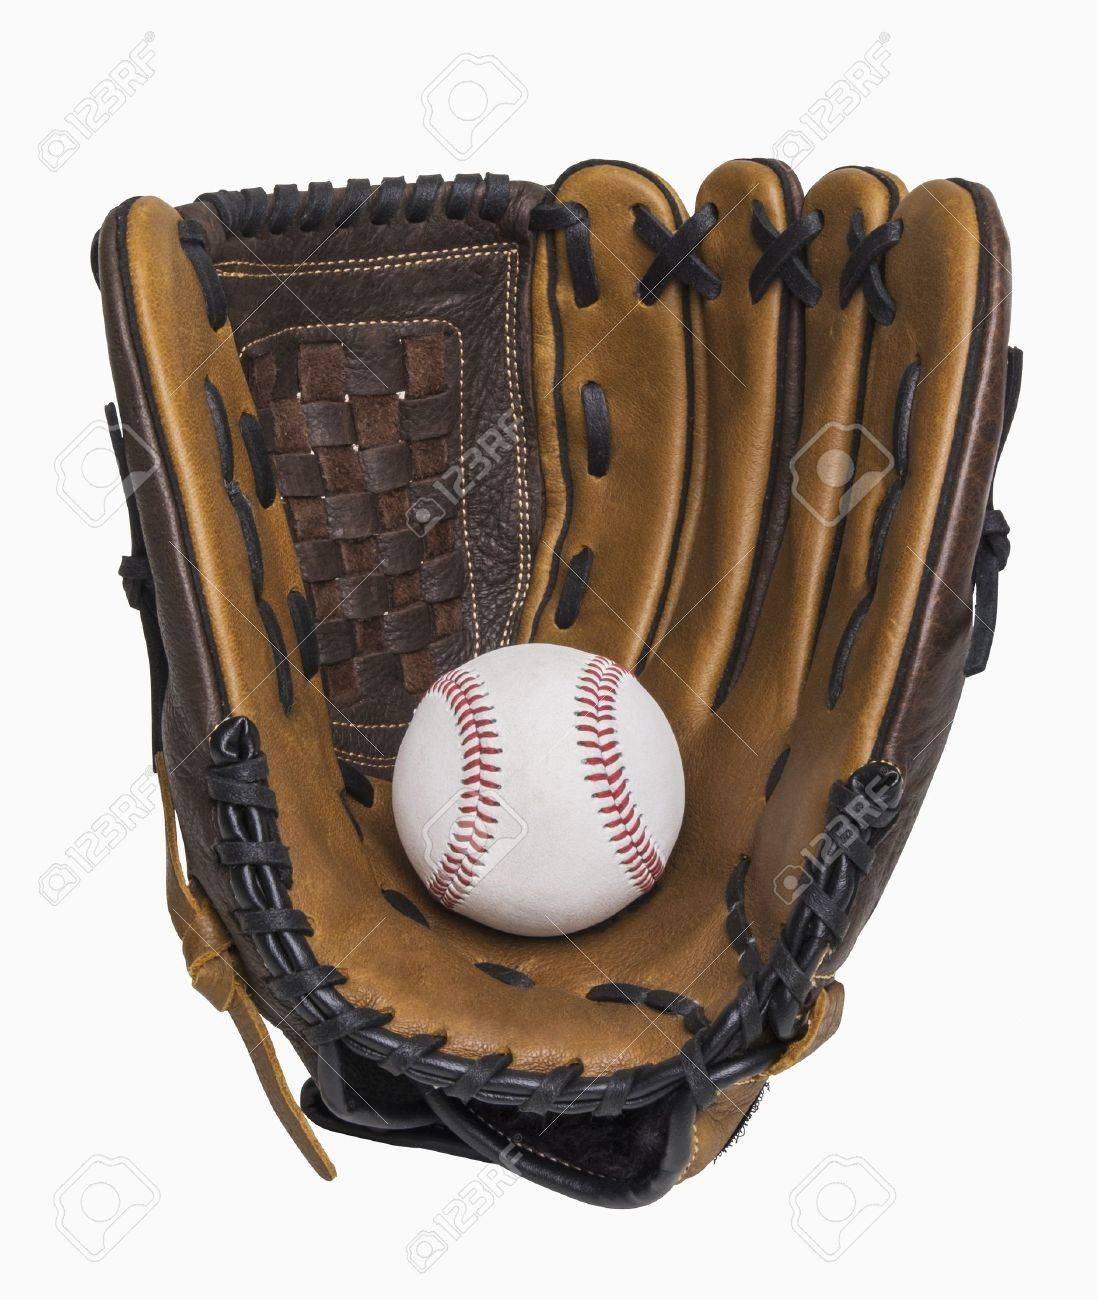 Baseball and baseball glove isolated on white, includes clipping path - 18308416